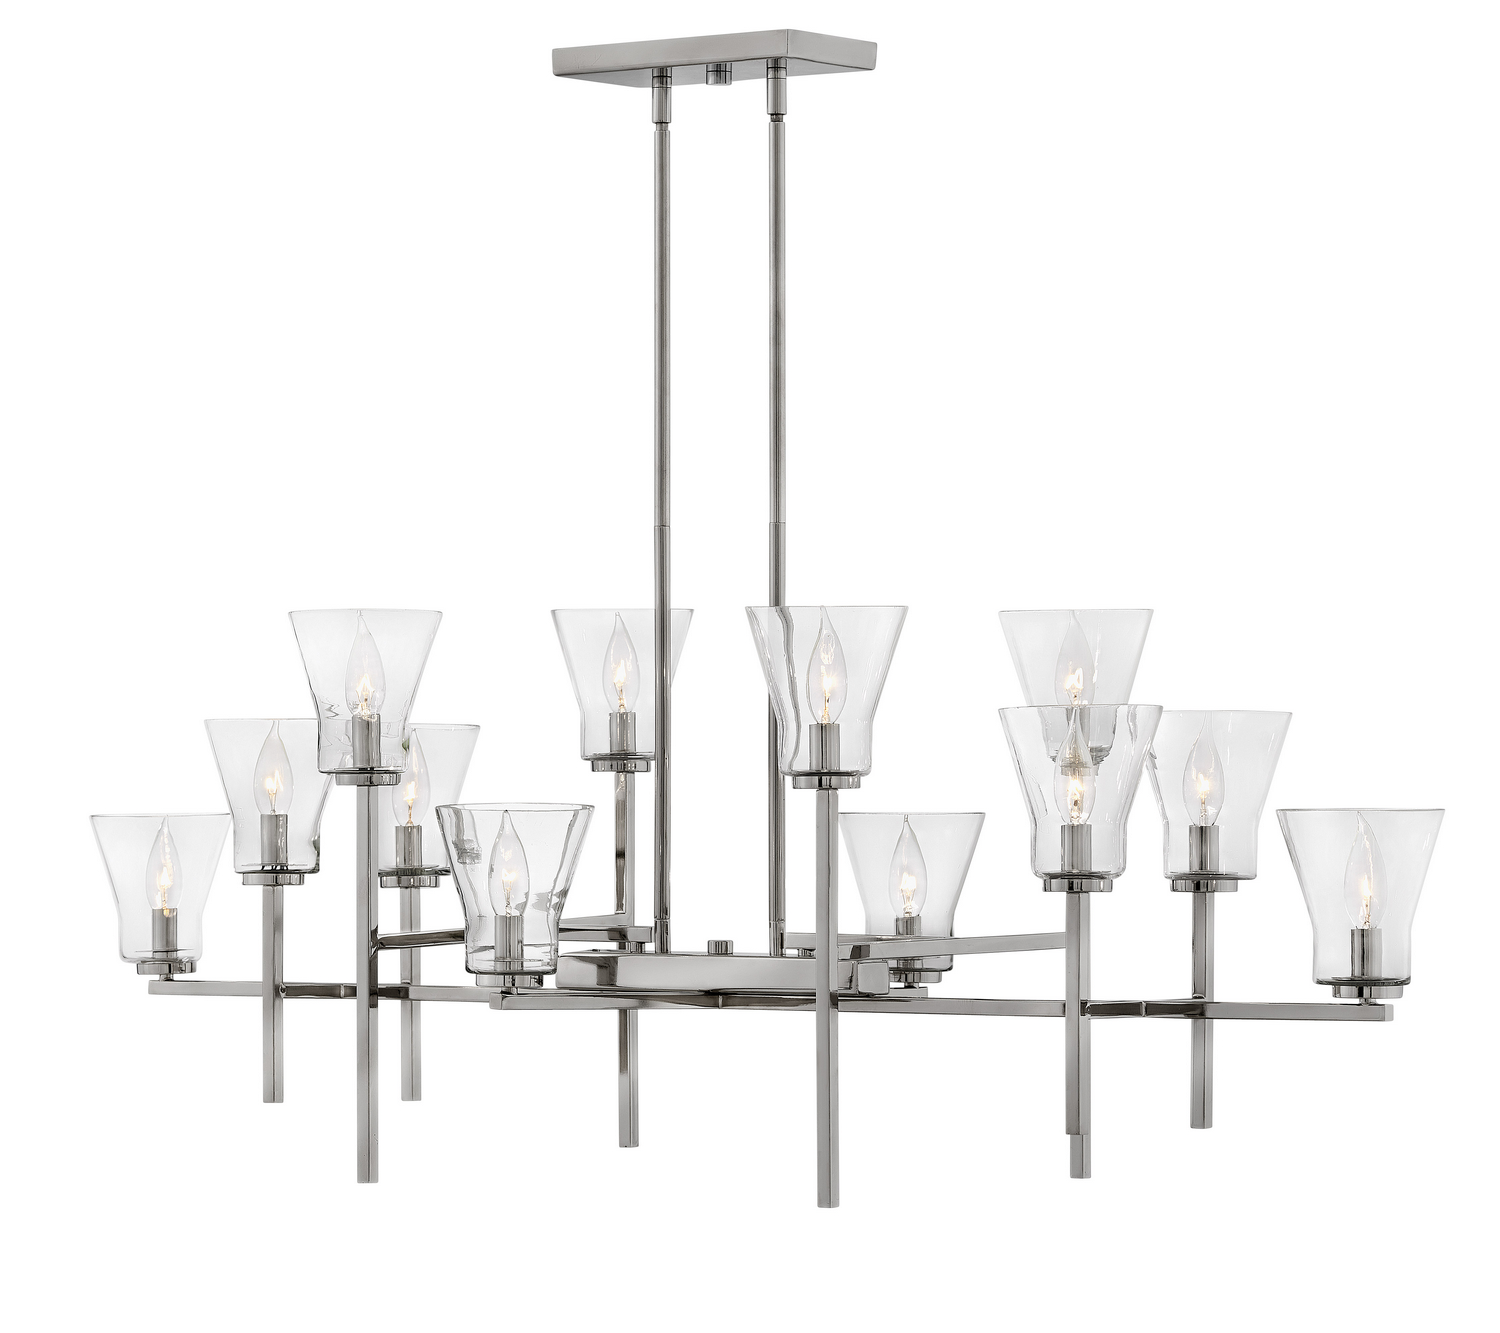 12 Light Linear Chandelier from the Arden collection by Hinkley 3459PL